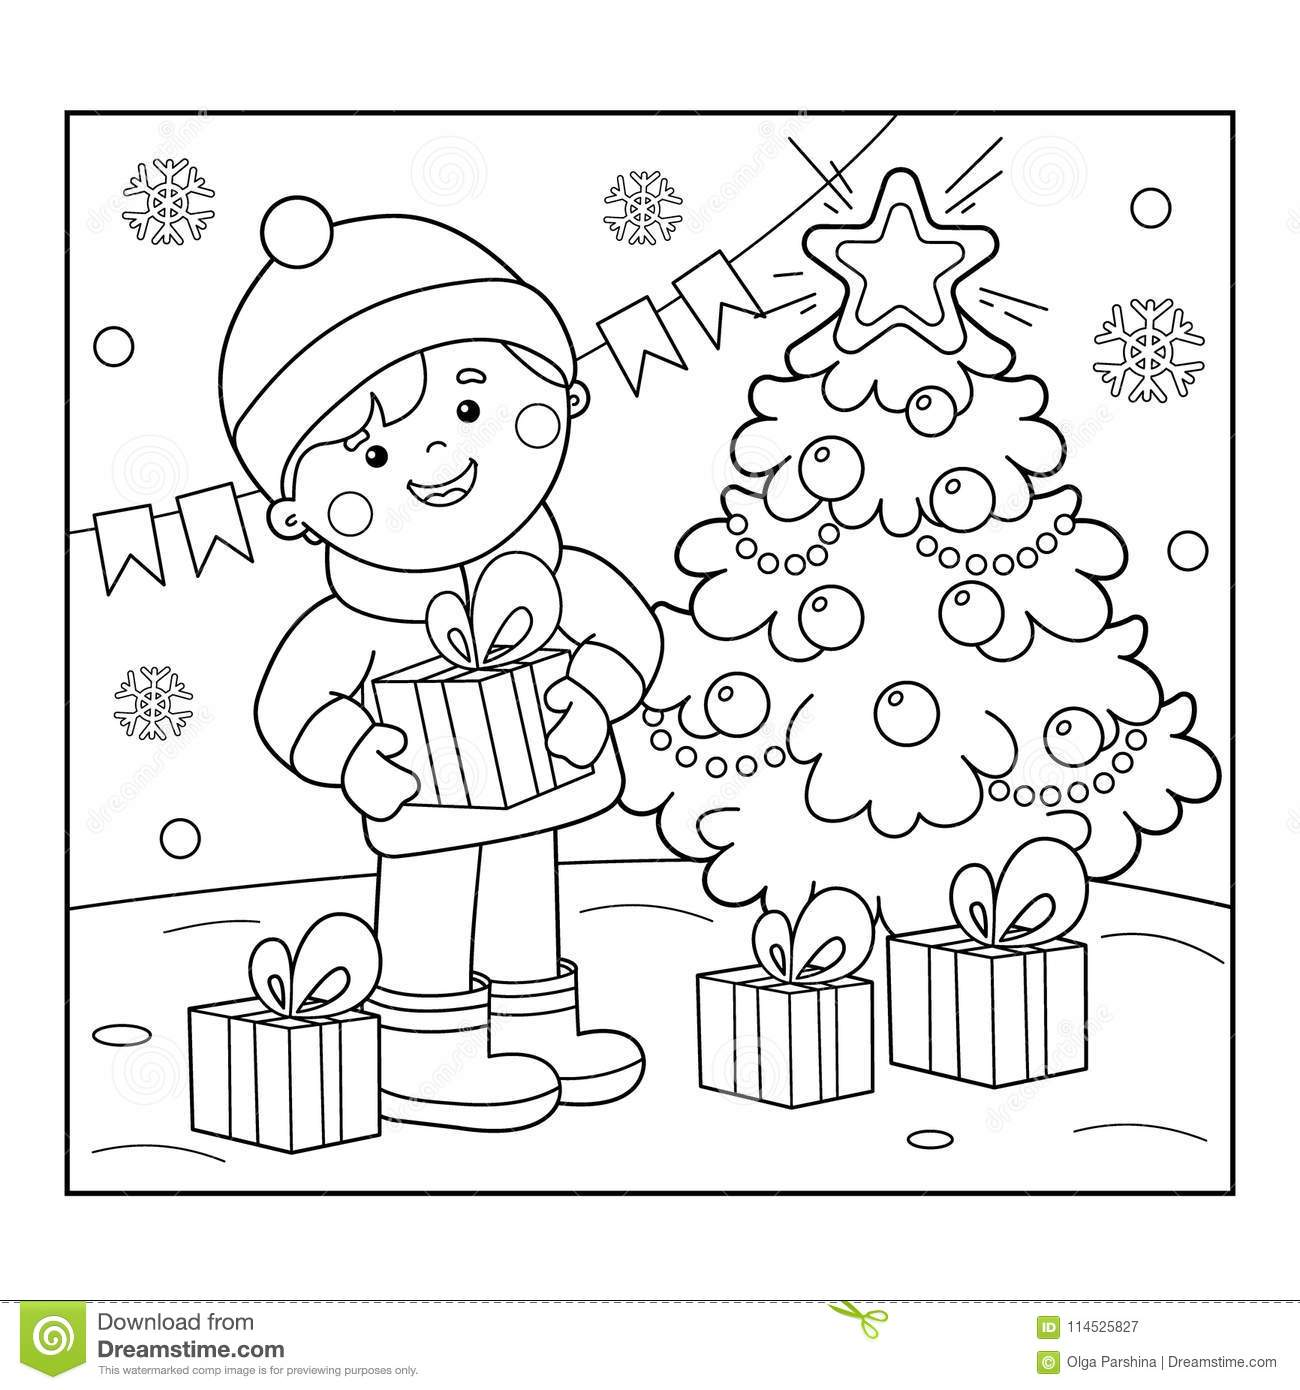 coloring page outline of boy with gifts at christmas tree christmas new year